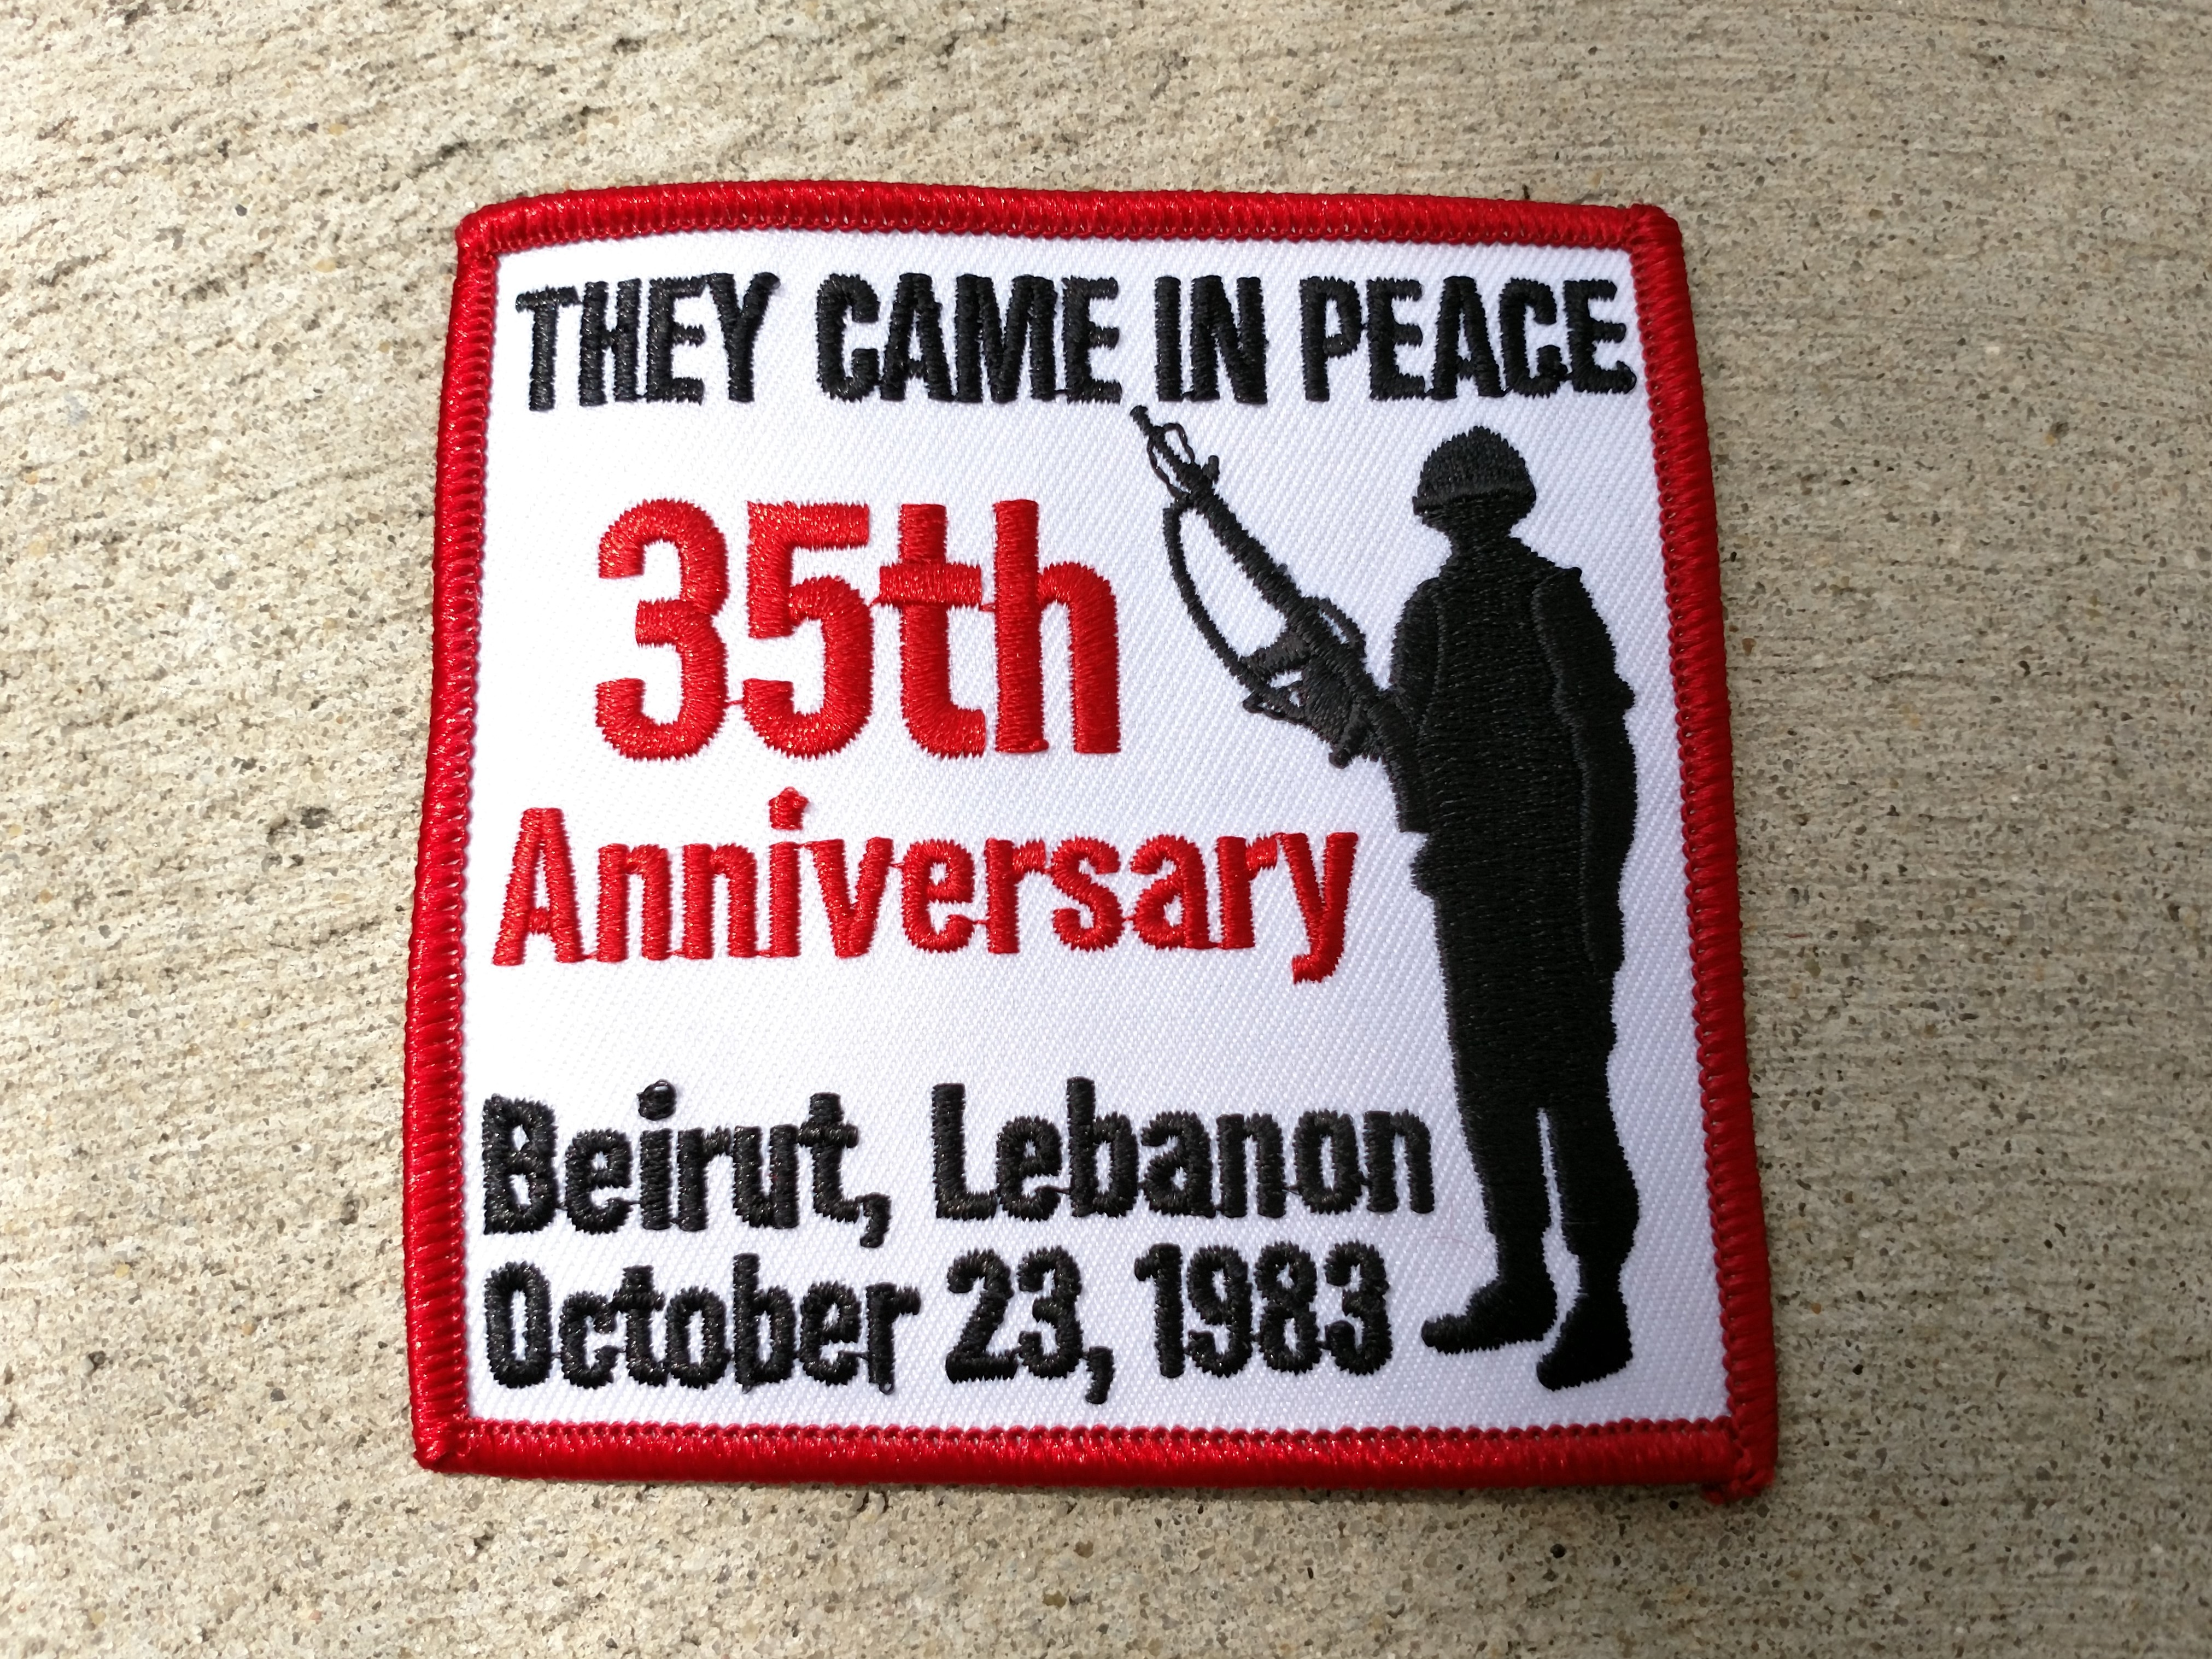 NEW Beirut They Came in Peace 35th Anniversary Patch